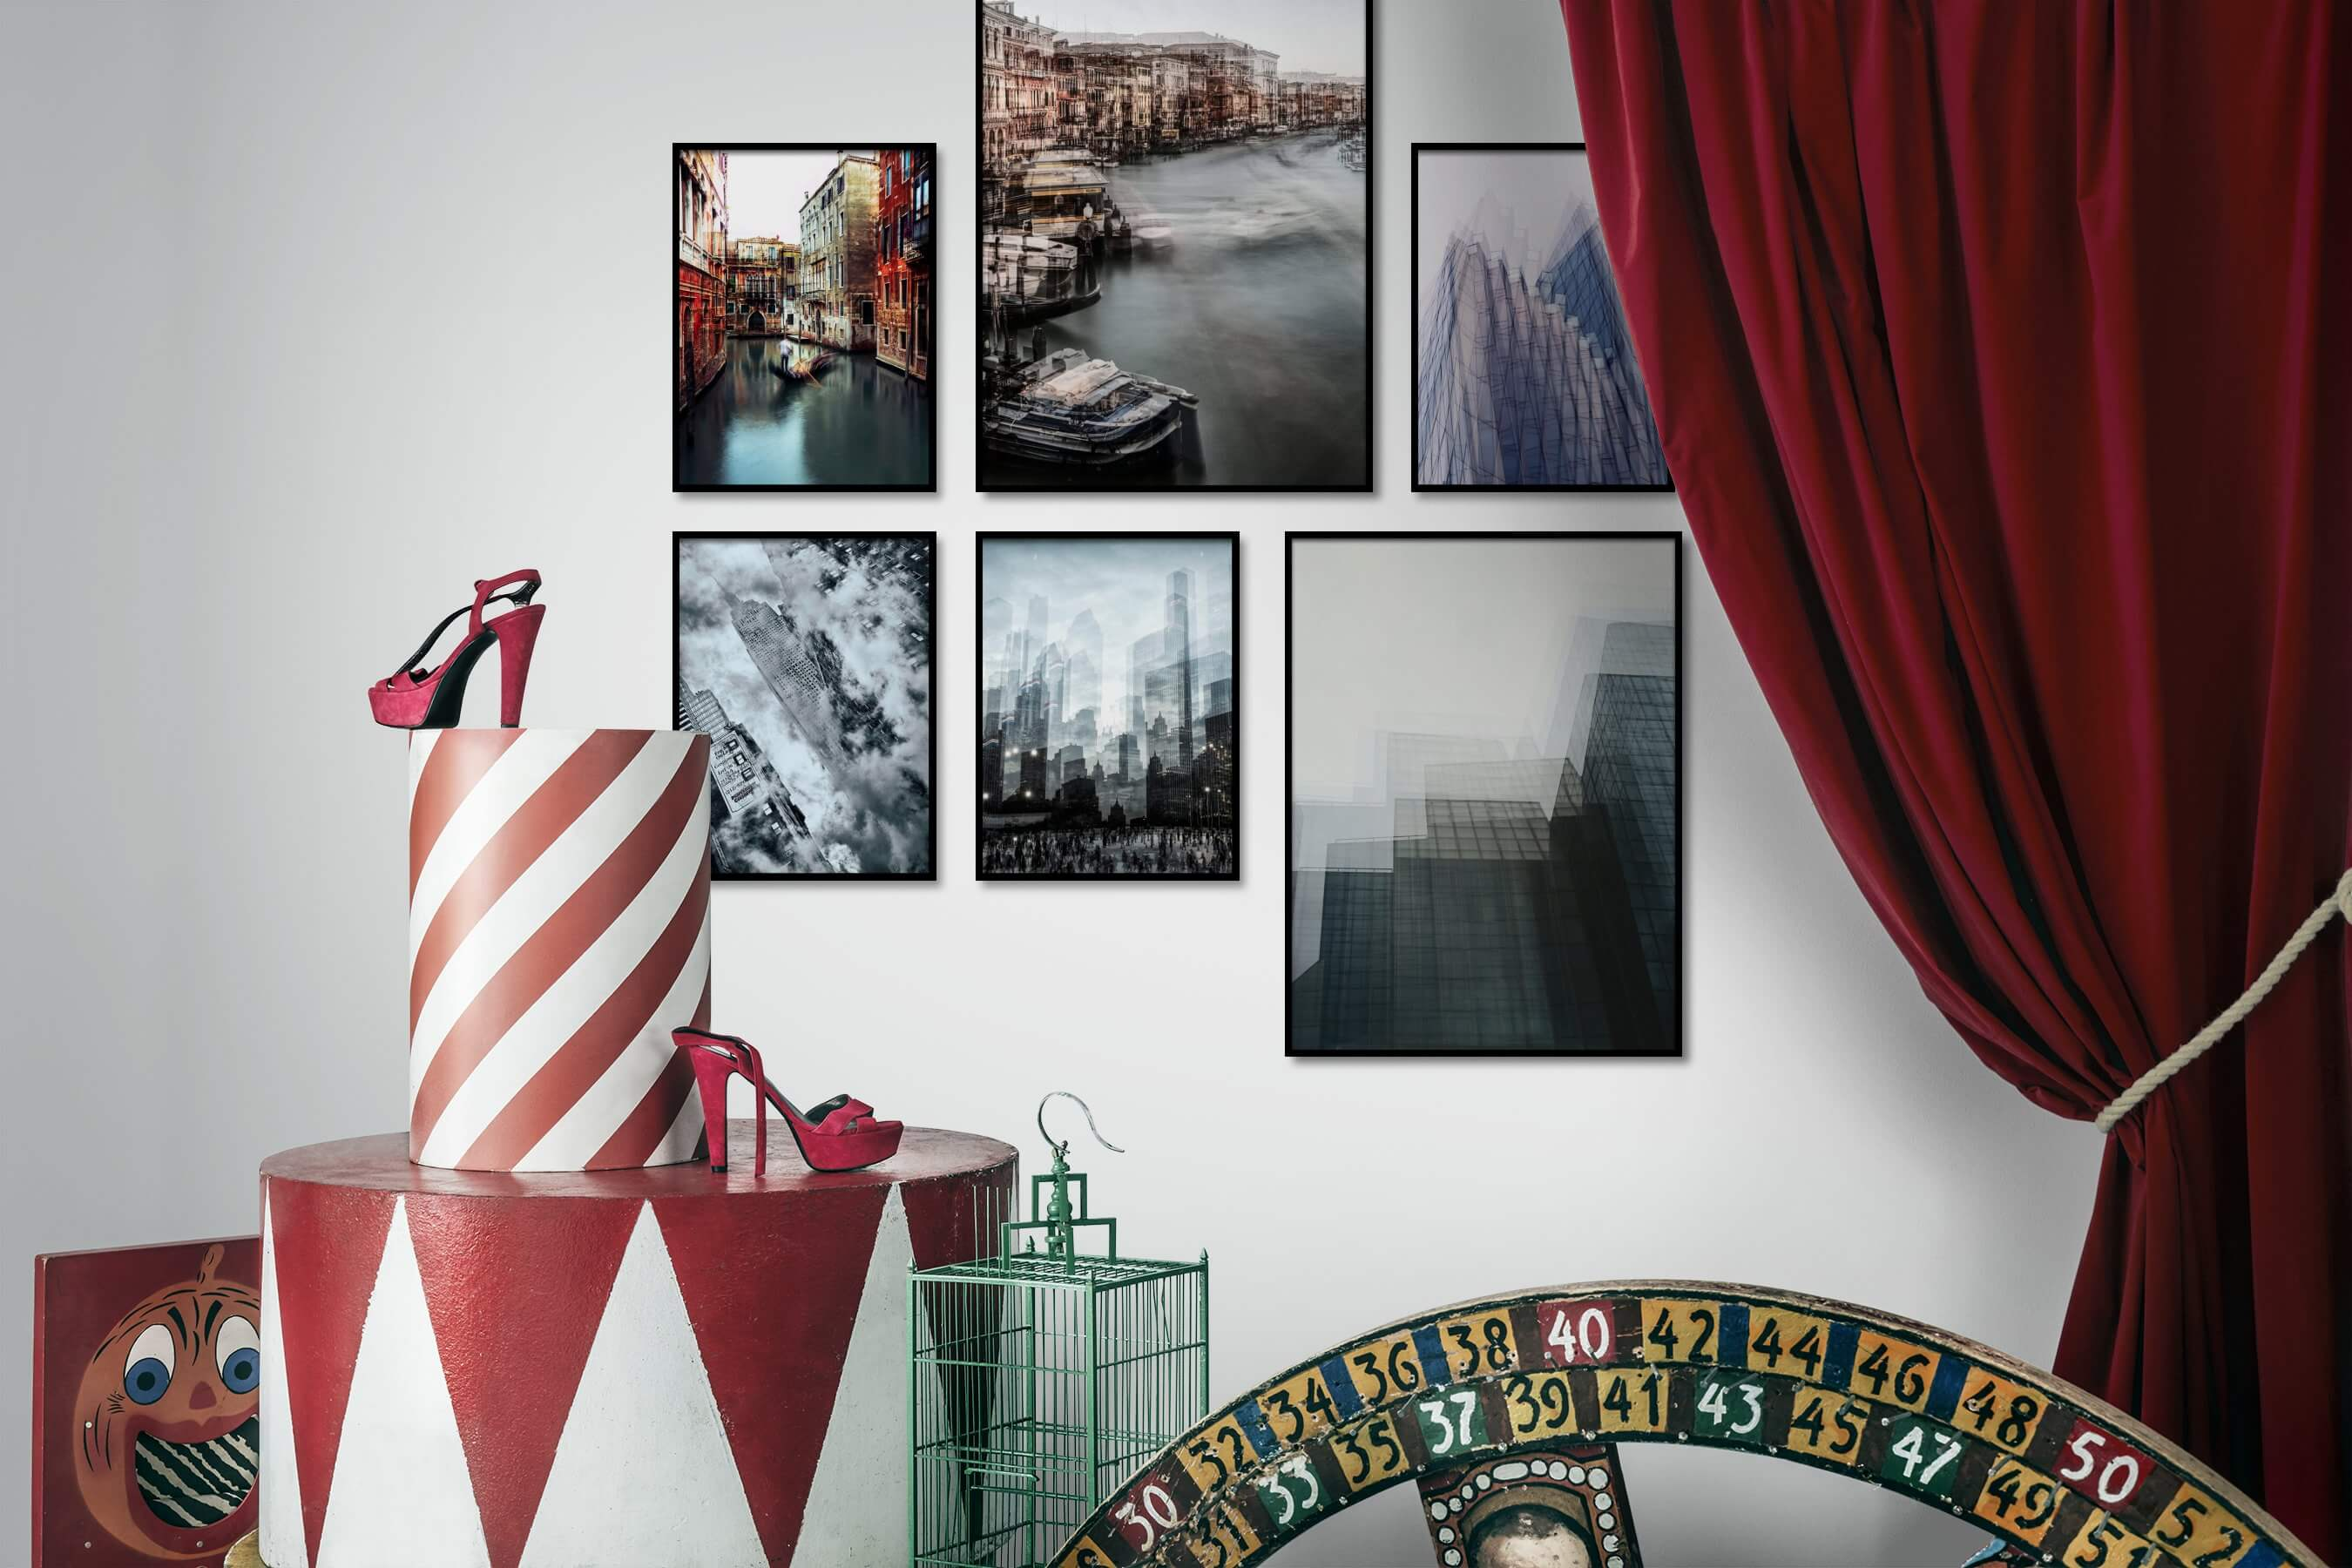 Gallery wall idea with six framed pictures arranged on a wall depicting For the Moderate, City Life, Black & White, Americana, Vintage, and For the Maximalist